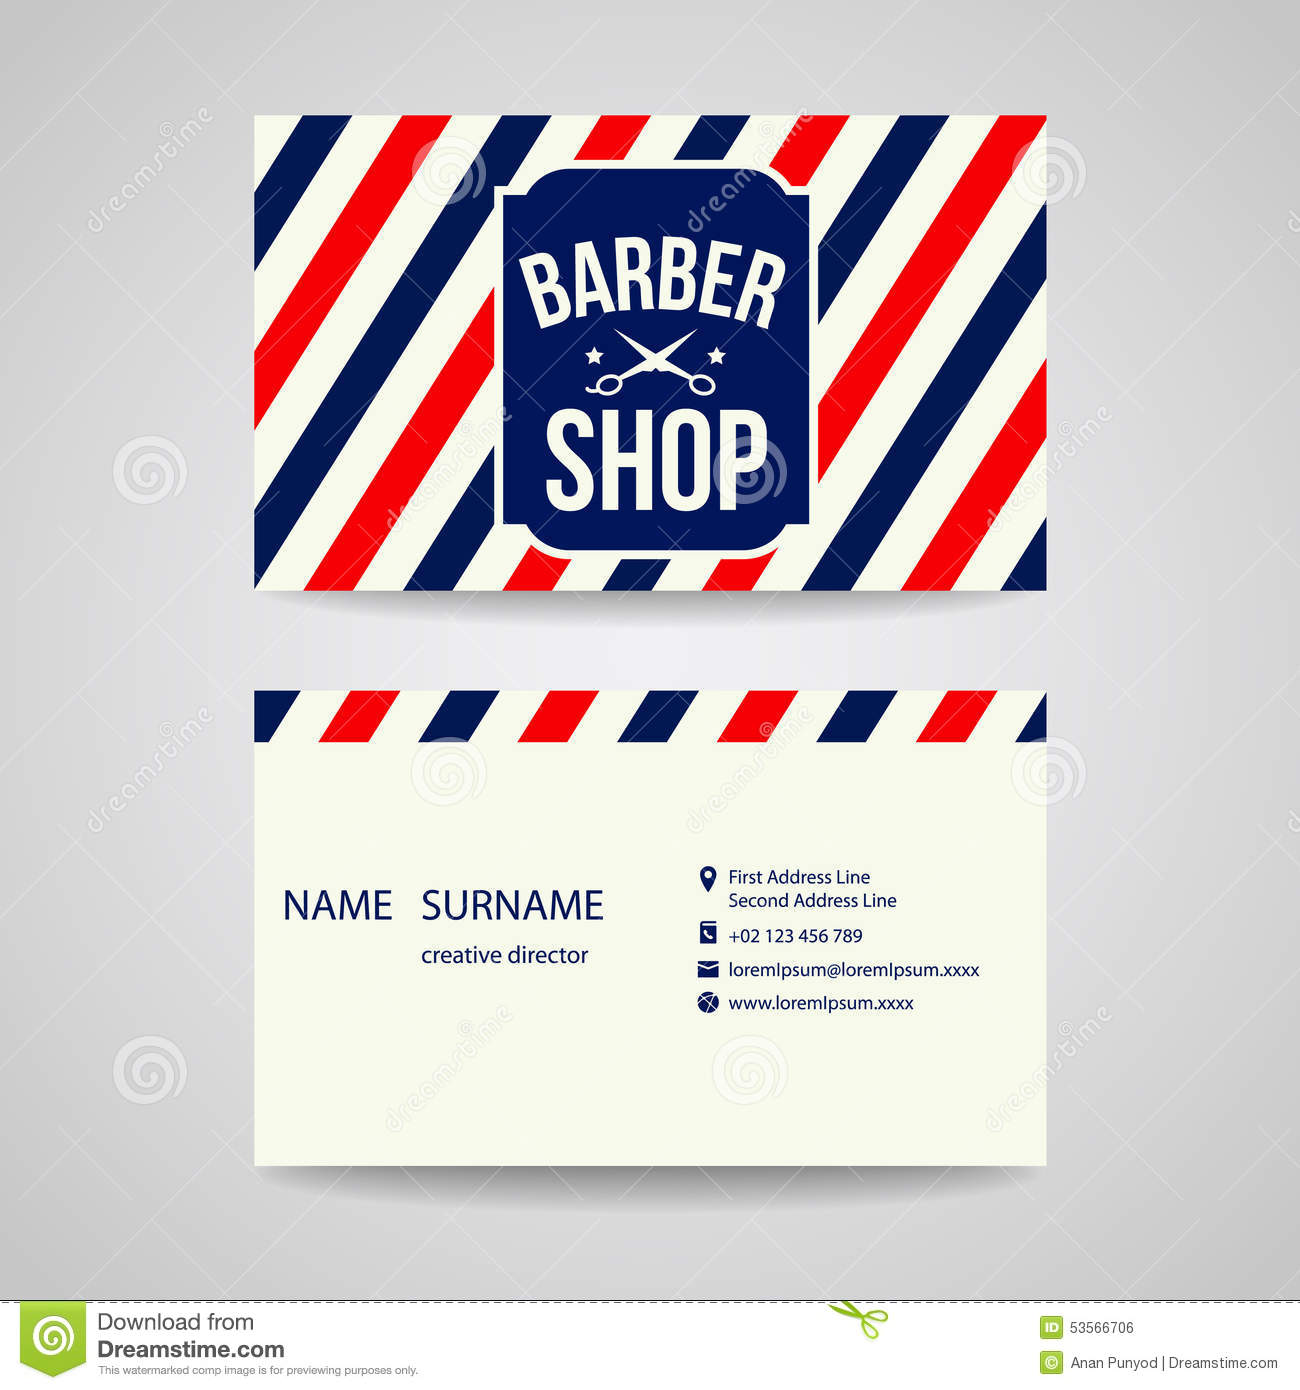 Business card template design for barber shop stock vector business card template design for barber shop friedricerecipe Choice Image